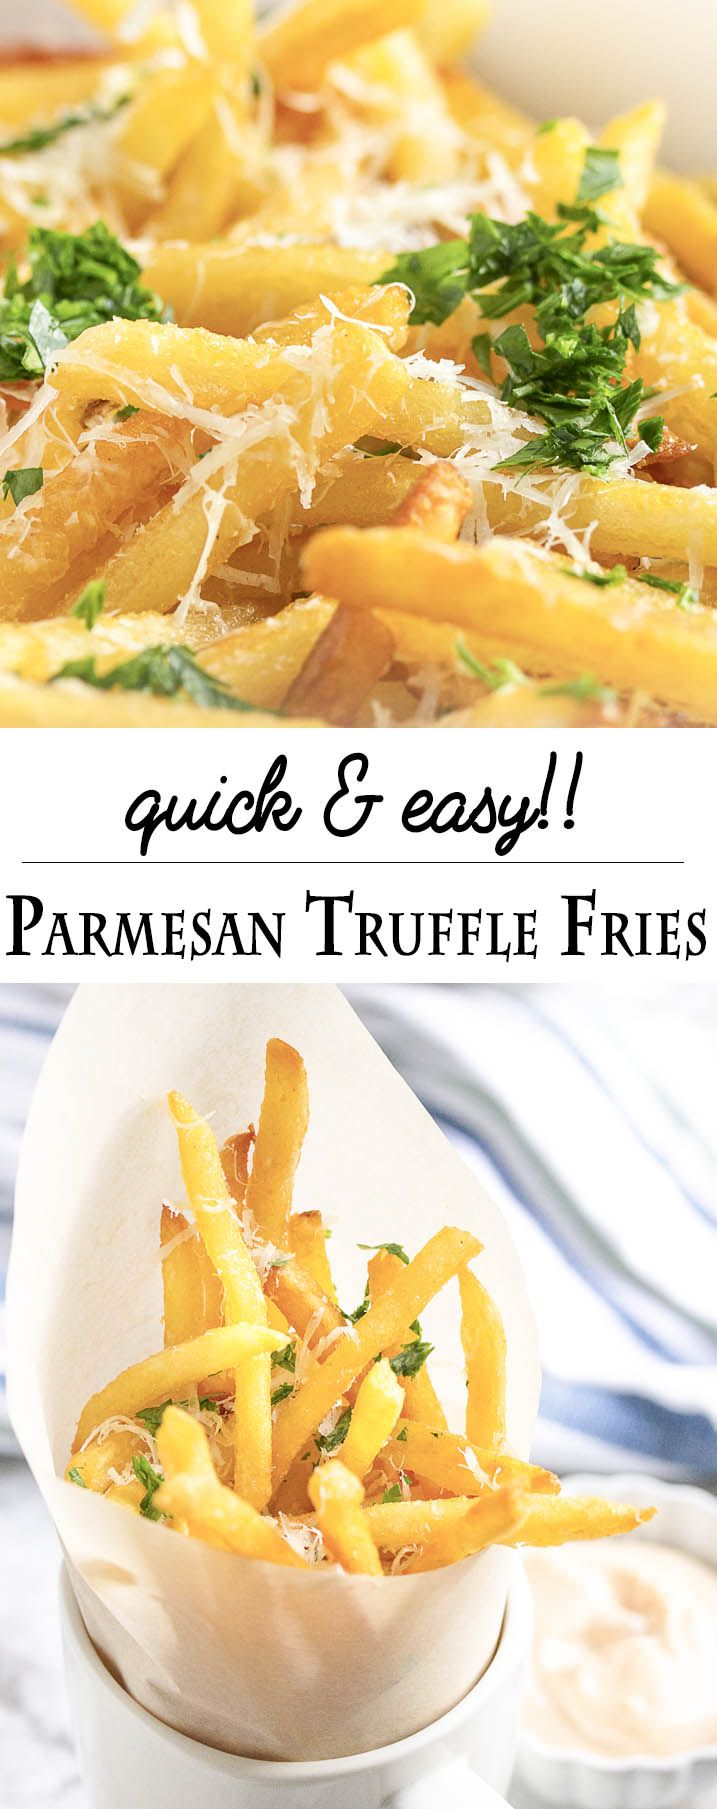 Parmesan Truffle Fries - Use frozen, bagged fries to have tasty truffle fries, covered in truffle oil, parmesan, and parsley on the table in less than 15 minutes. | justalittlebitofbacon.com